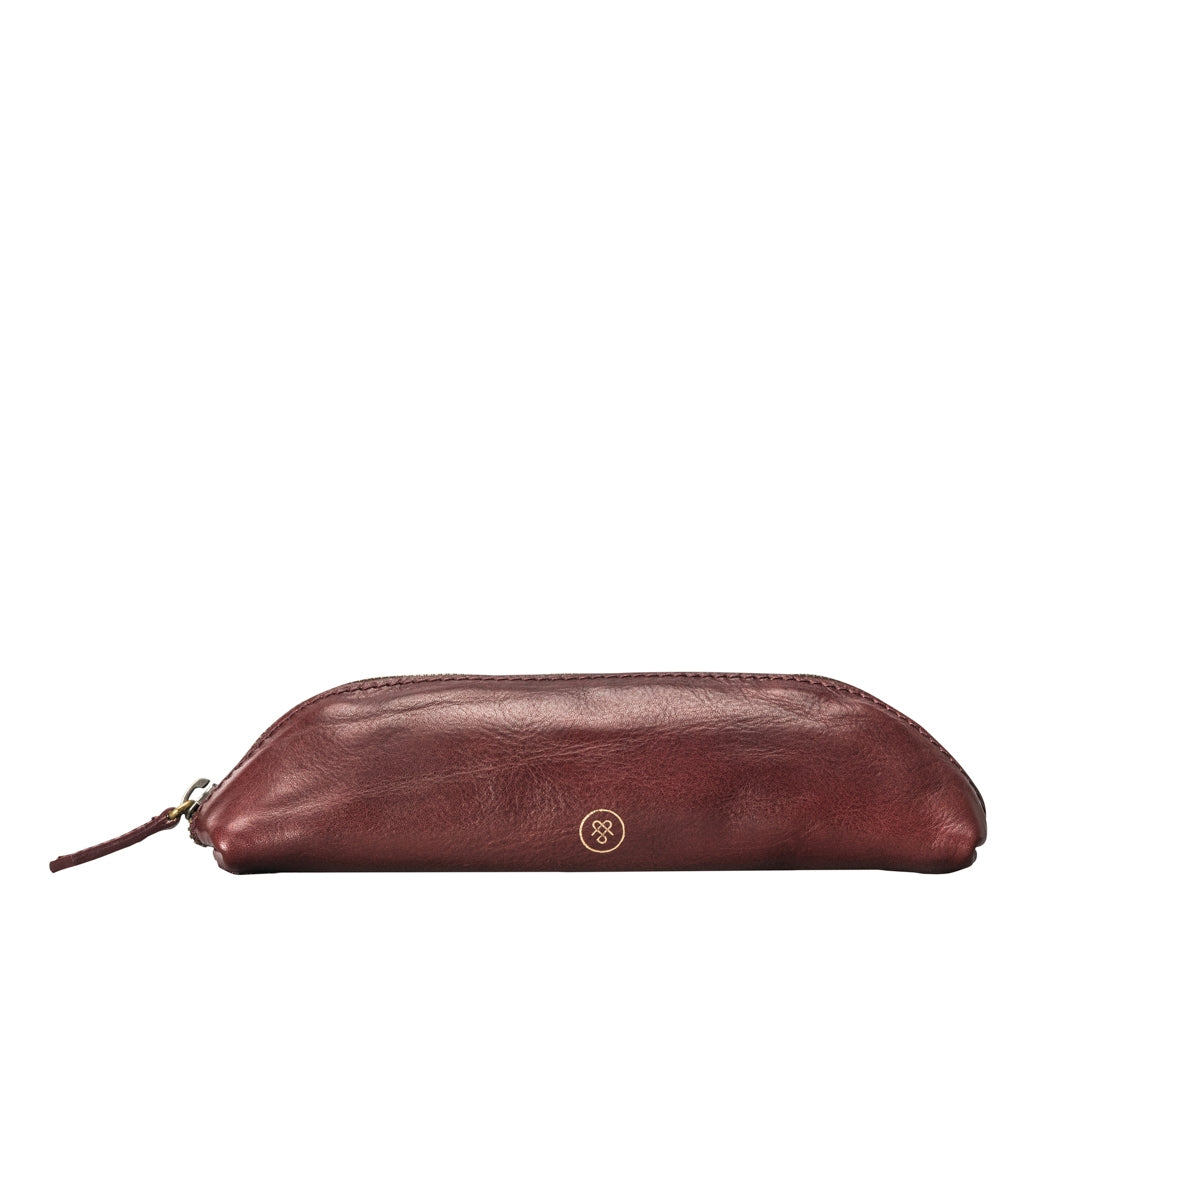 Image 1 of the 'Felice' Wine Leather Slim Pencil Case